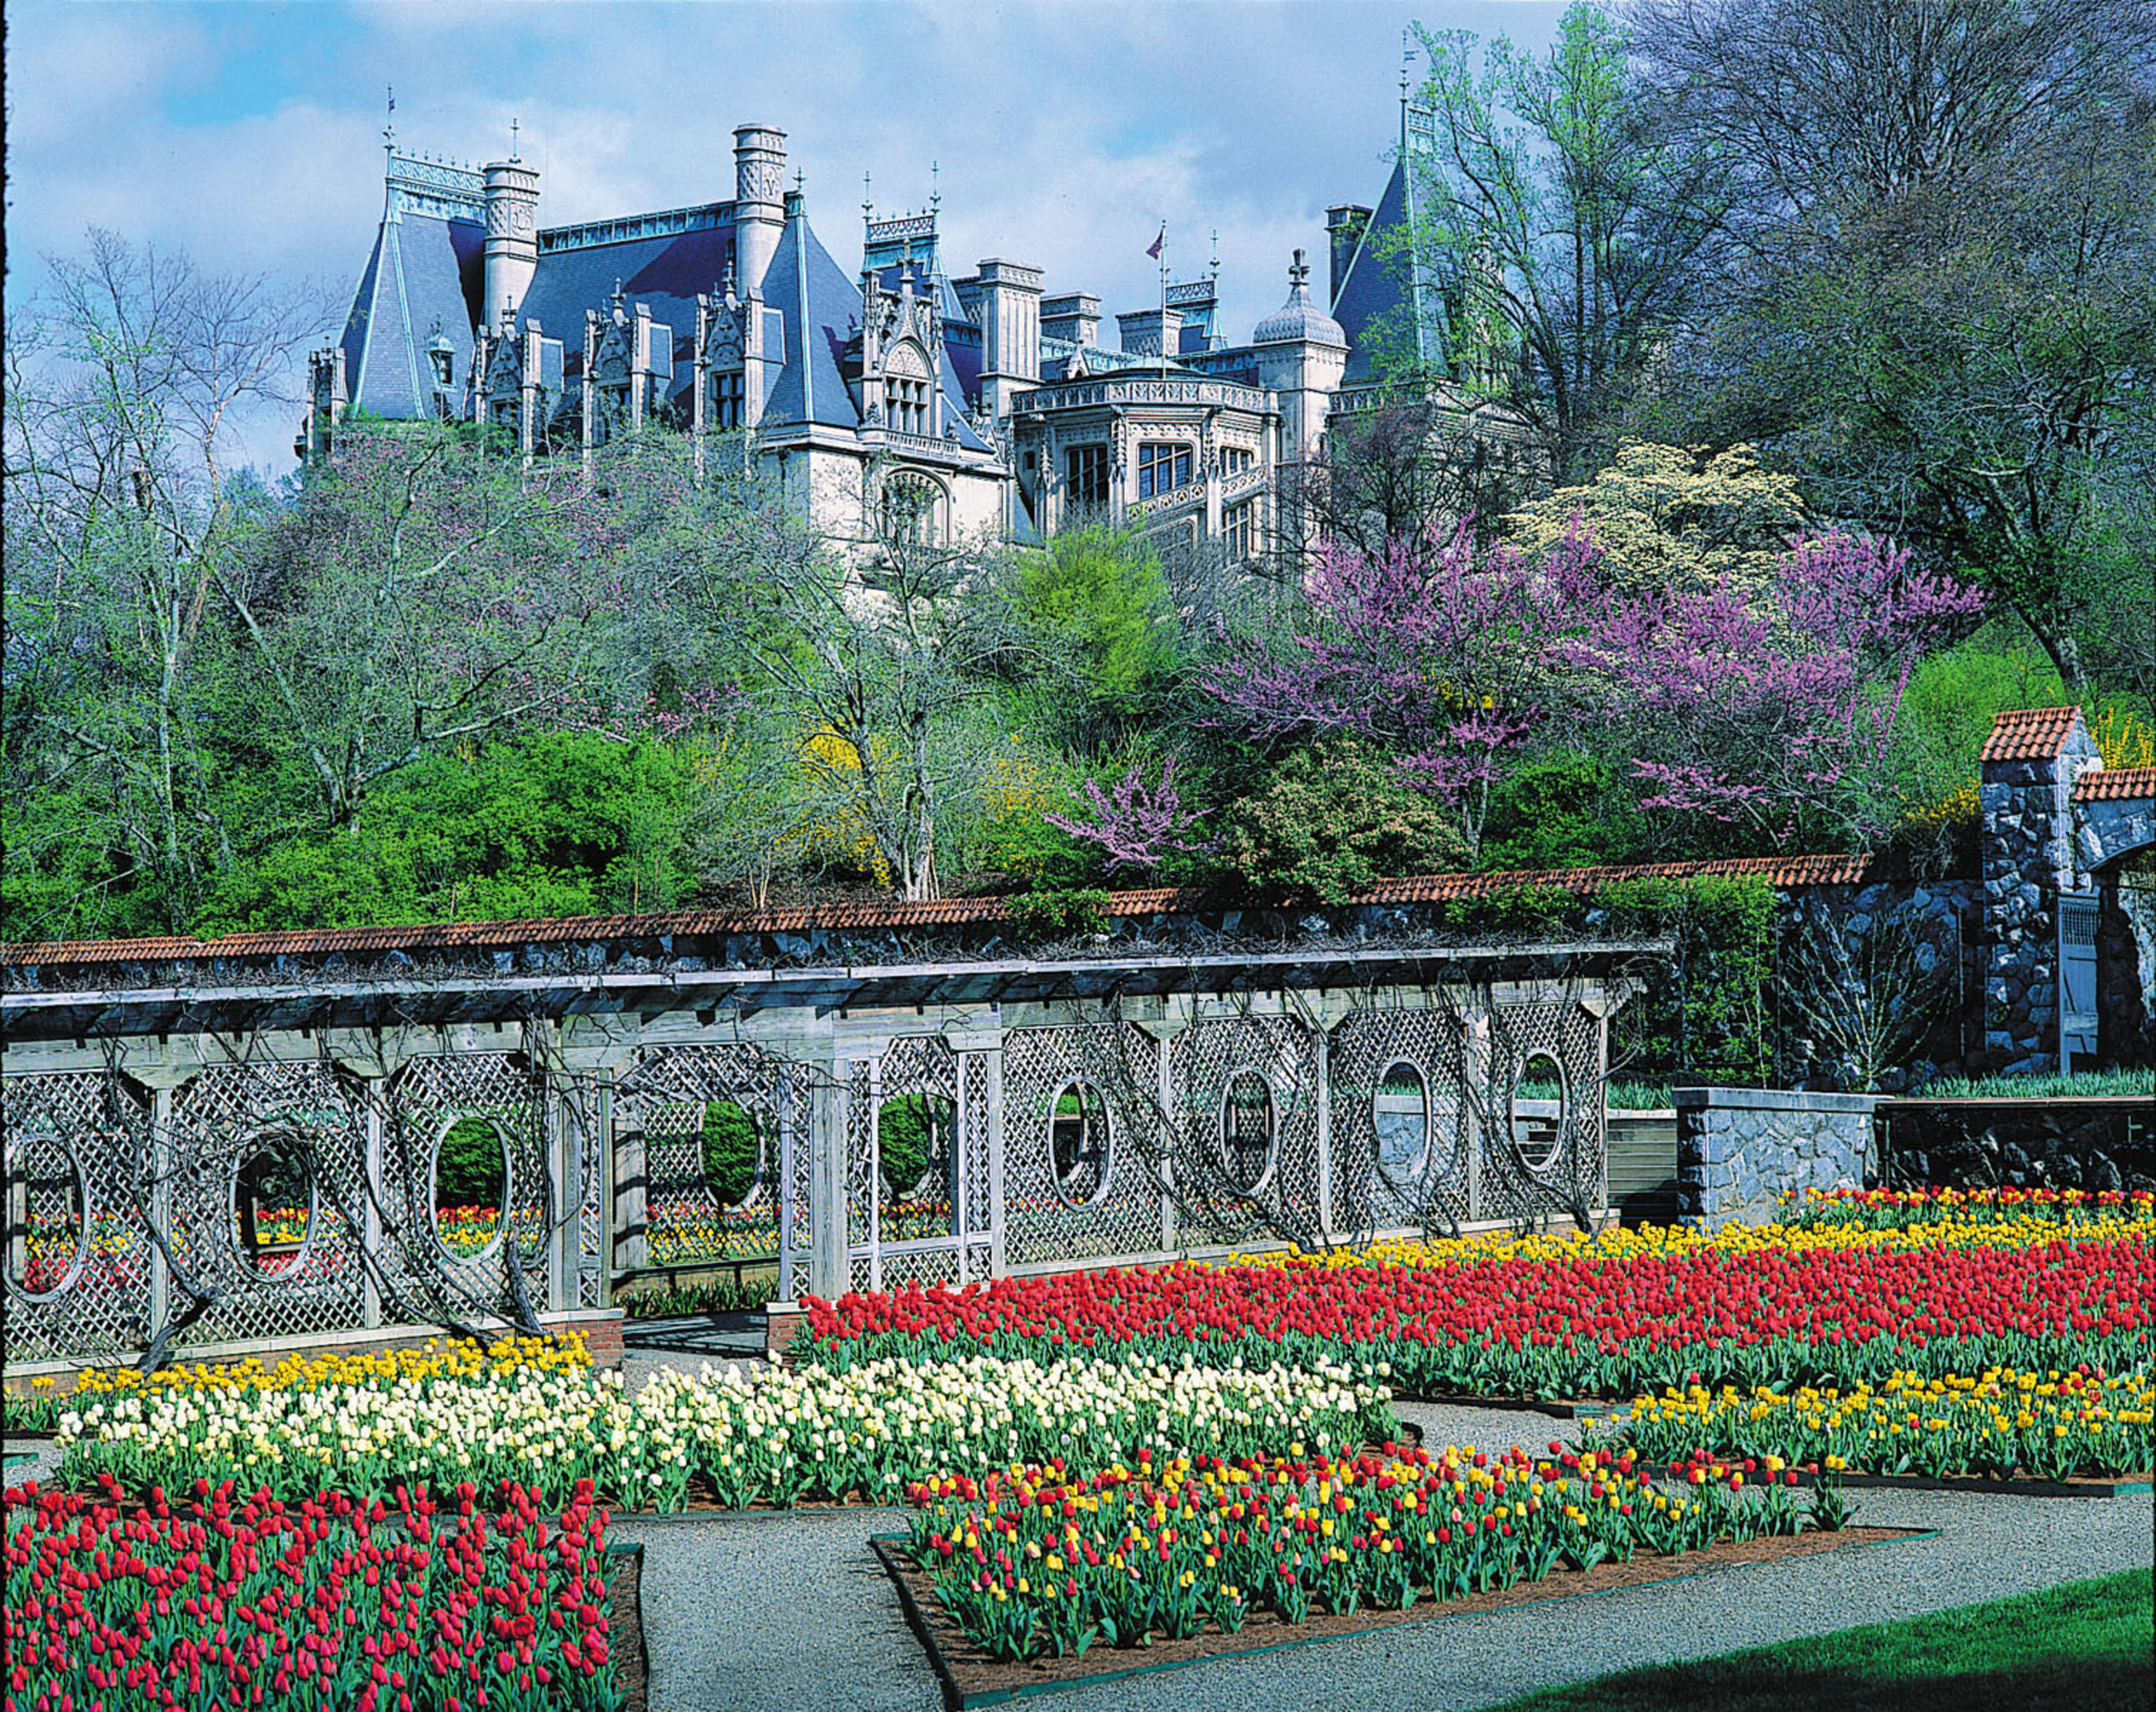 Biltmore Blooms With Spring Flowers Wedding Dresses On Display